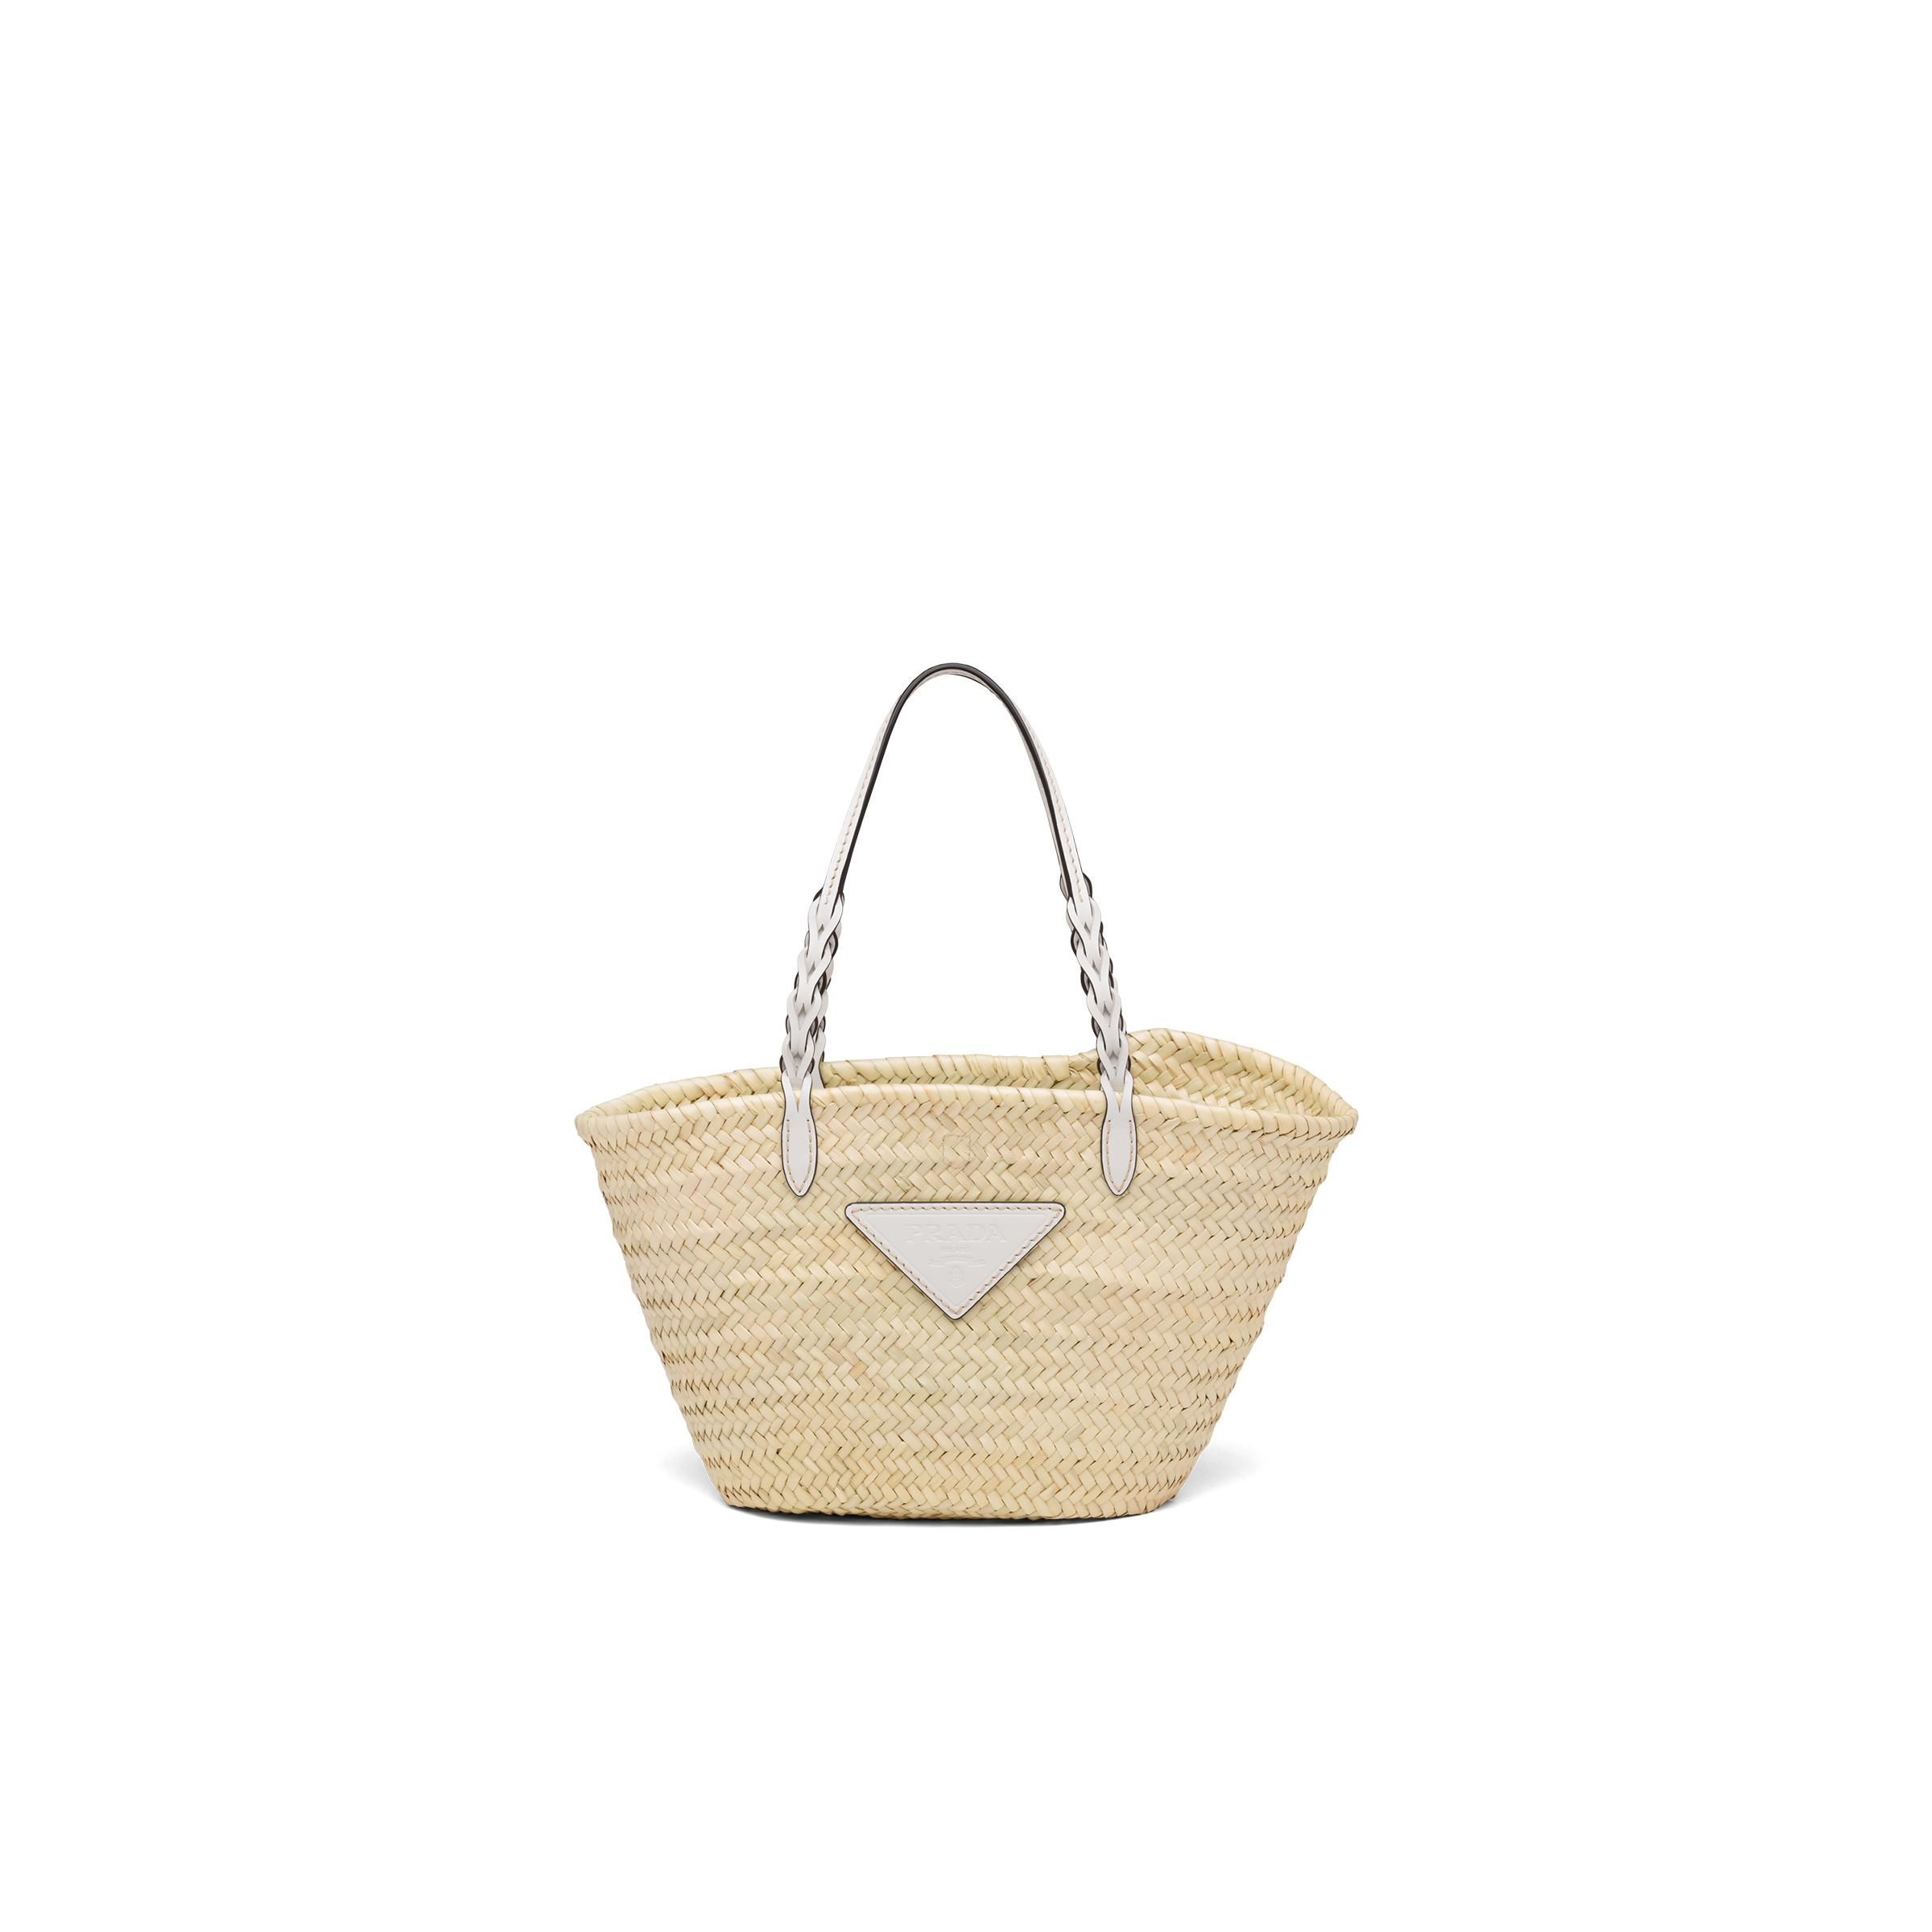 Woven Palm And Leather Tote Women Tan/white